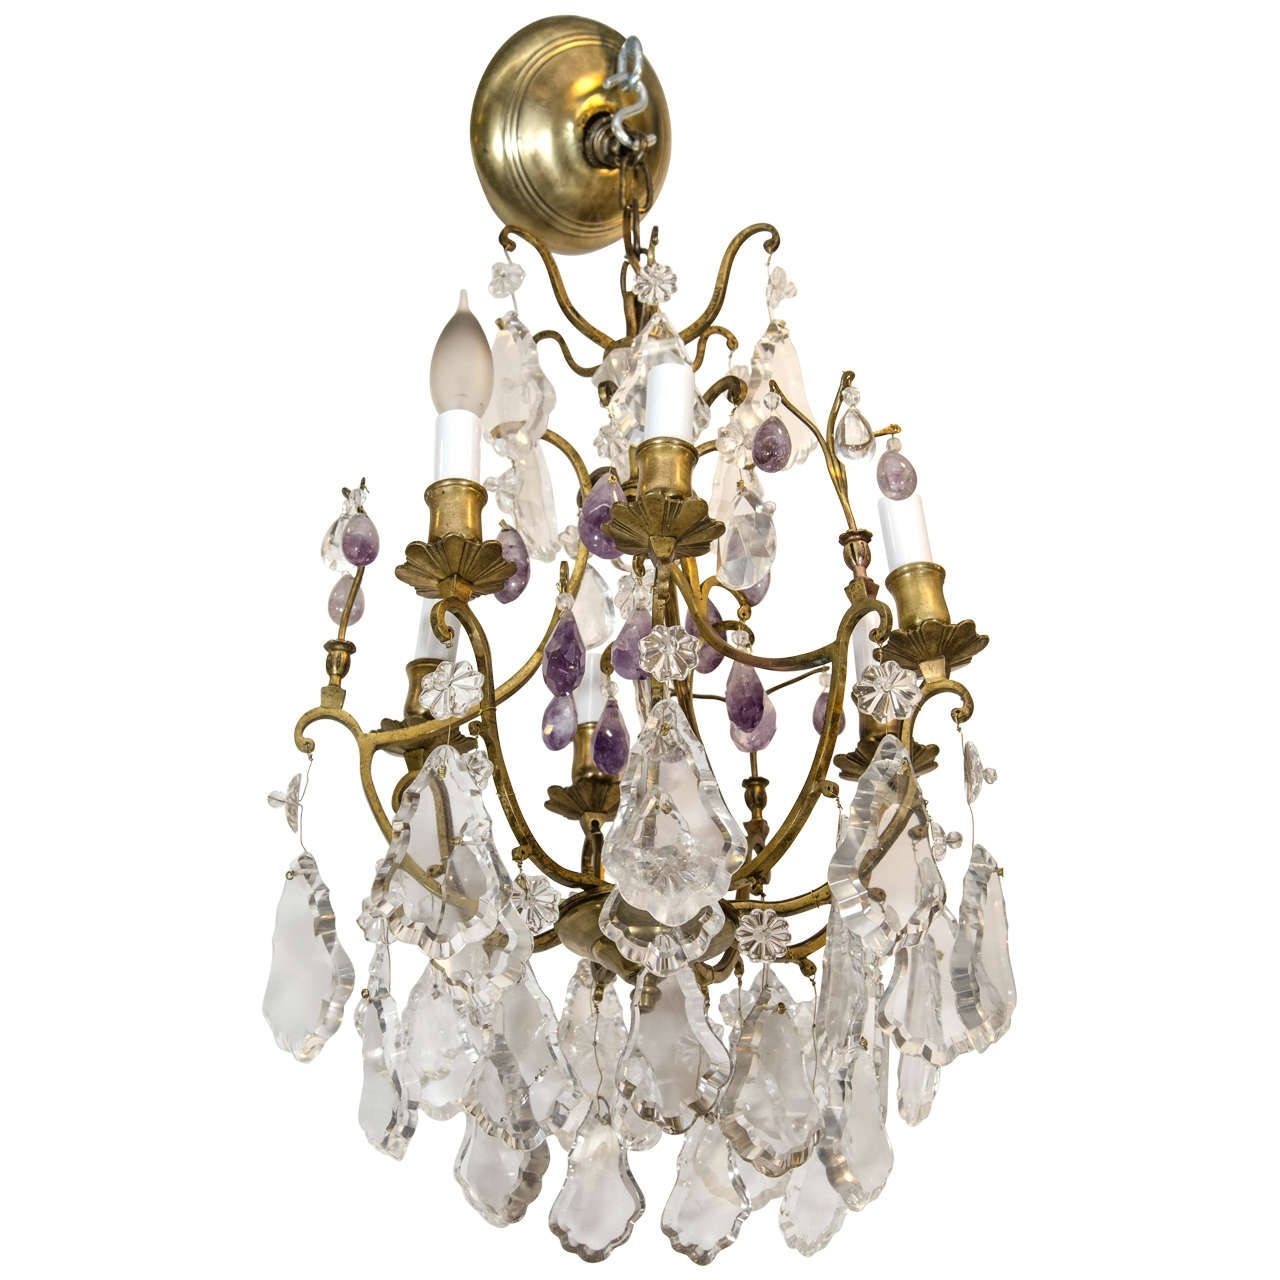 Purple Crystal Chandeliers Throughout Most Recently Released Gilded Bronze And Rock Crystal Chandelier With Purple Amethyst After (View 16 of 20)